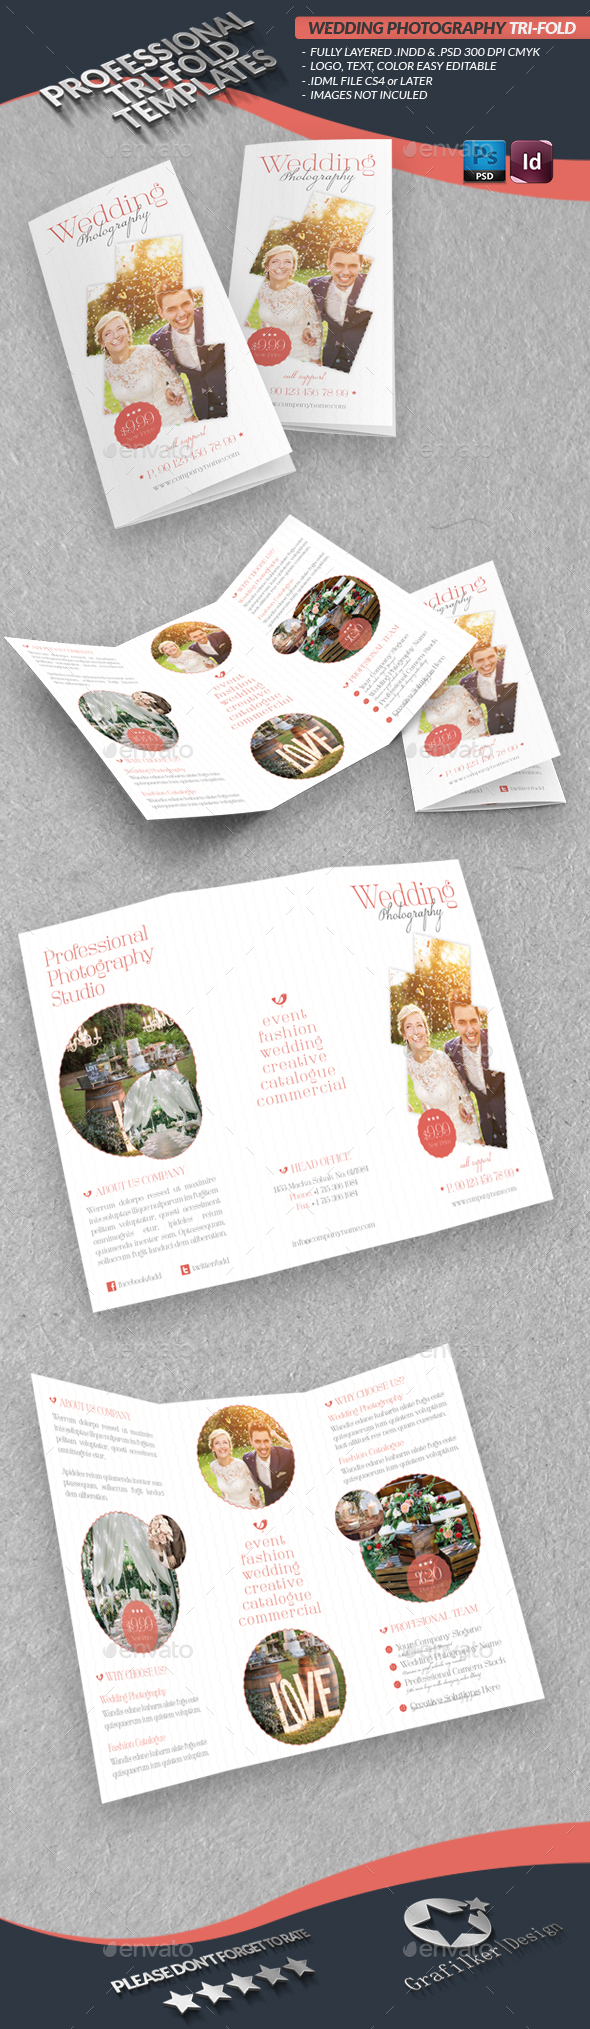 Wedding Photography Tri-Fold Template - Informational Brochures